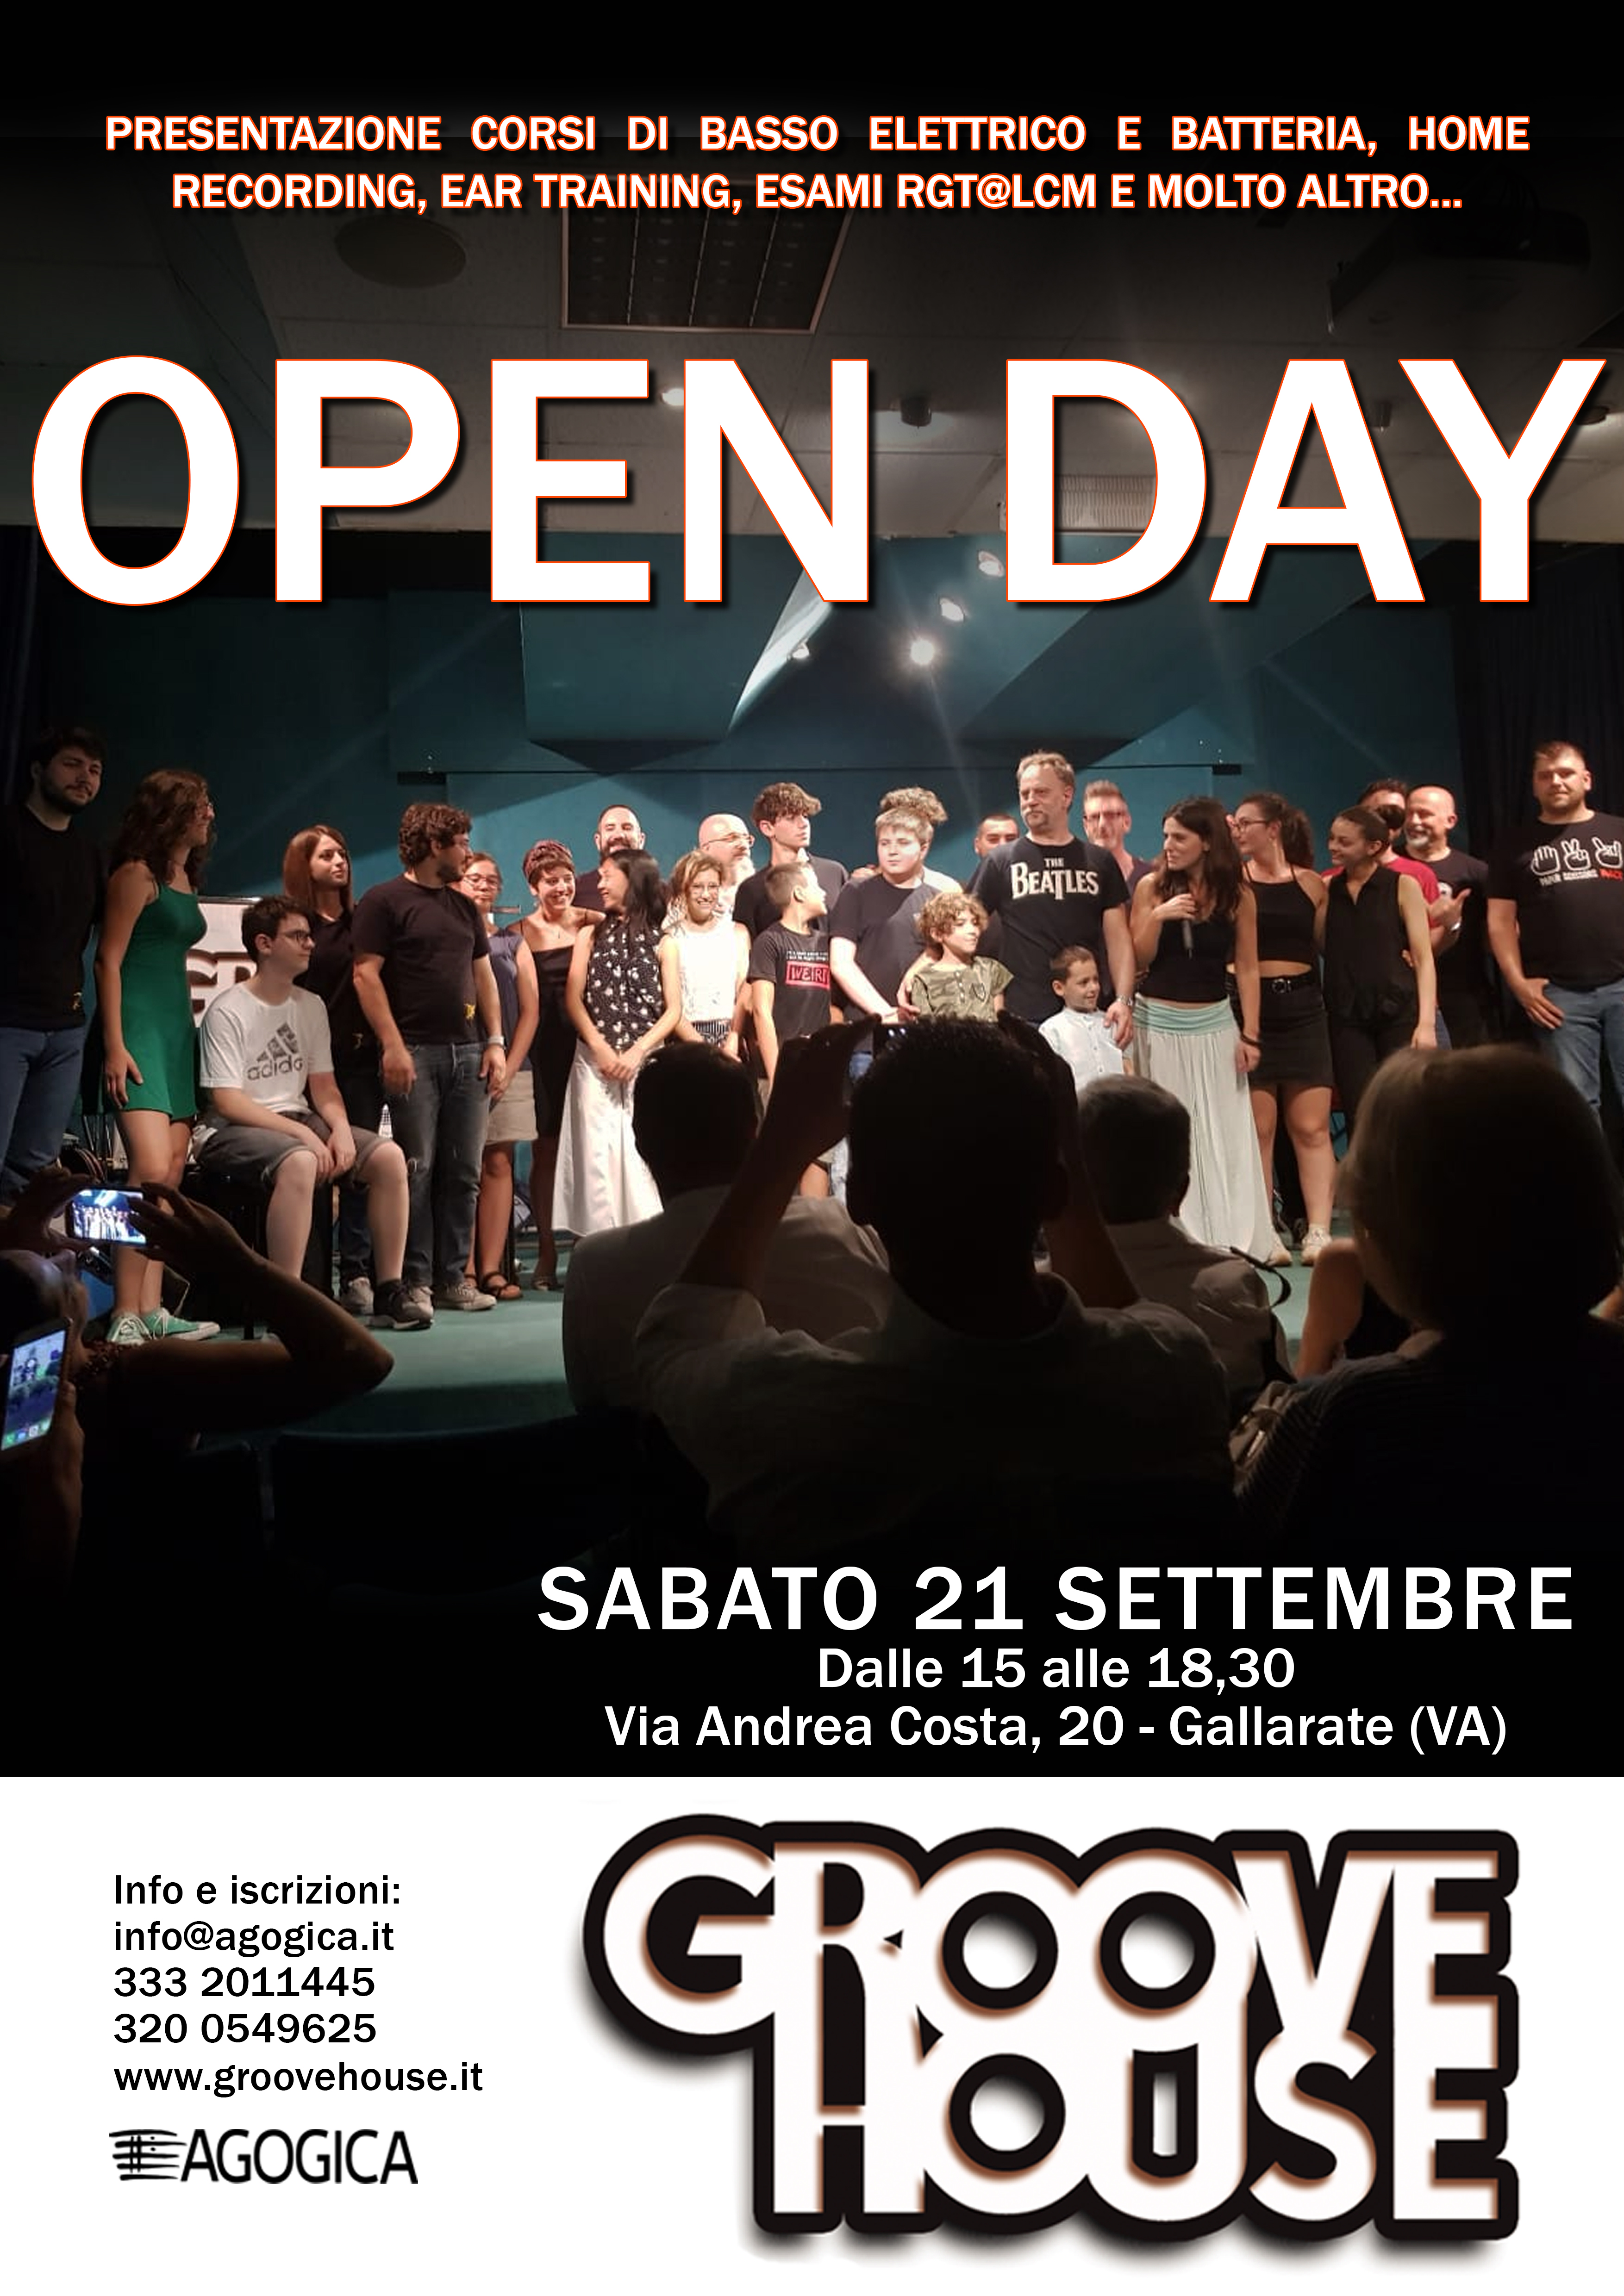 Sabato 21 Settembre 2019 : OPEN DAY GROOVE HOUSE!